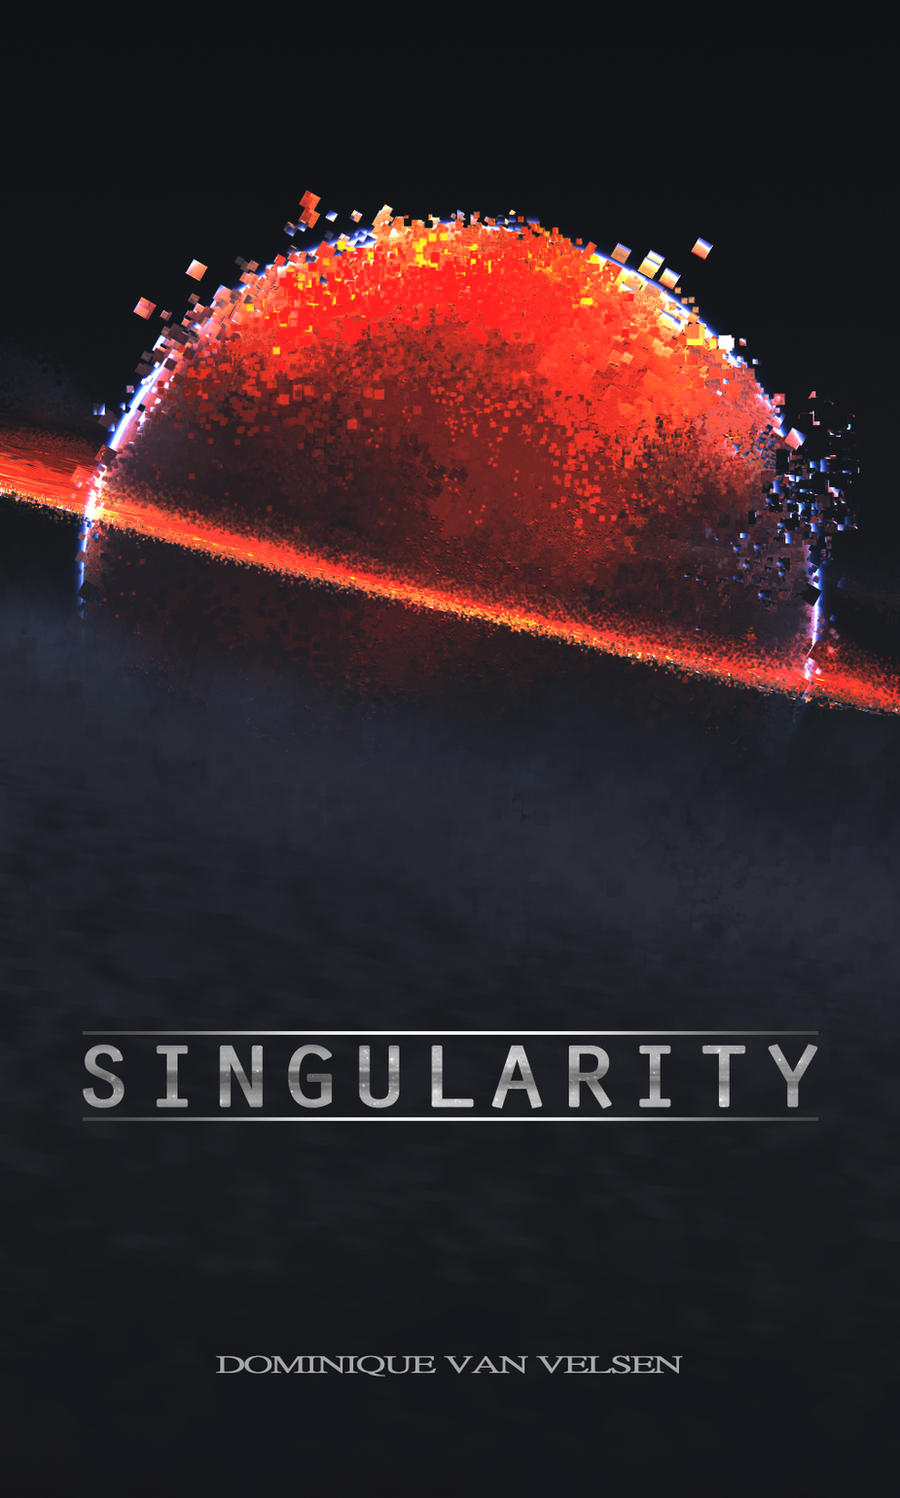 Singularity (Video) by DominiquevVelsen